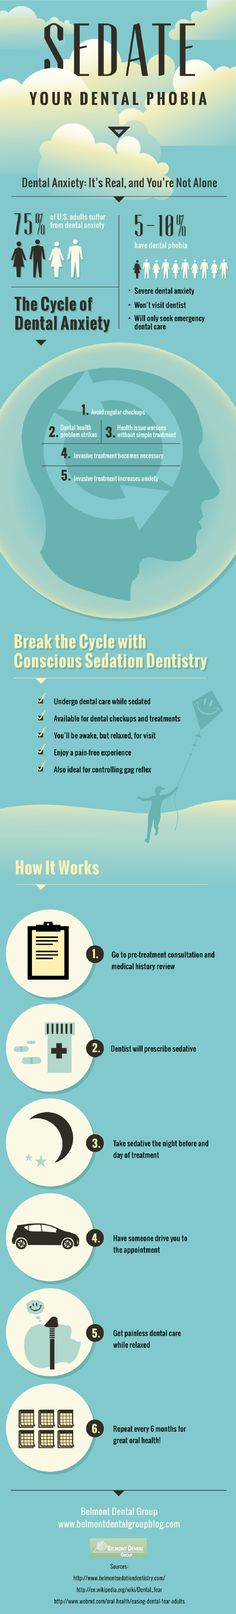 Dental anxiety can keep people from getting regular dental checkups. Sedation dentistry helps people relax enough to maintain their oral health. This infographic from a dentist in Belmont, Massachusetts has more information about dental anxiety and why it is a real issue.